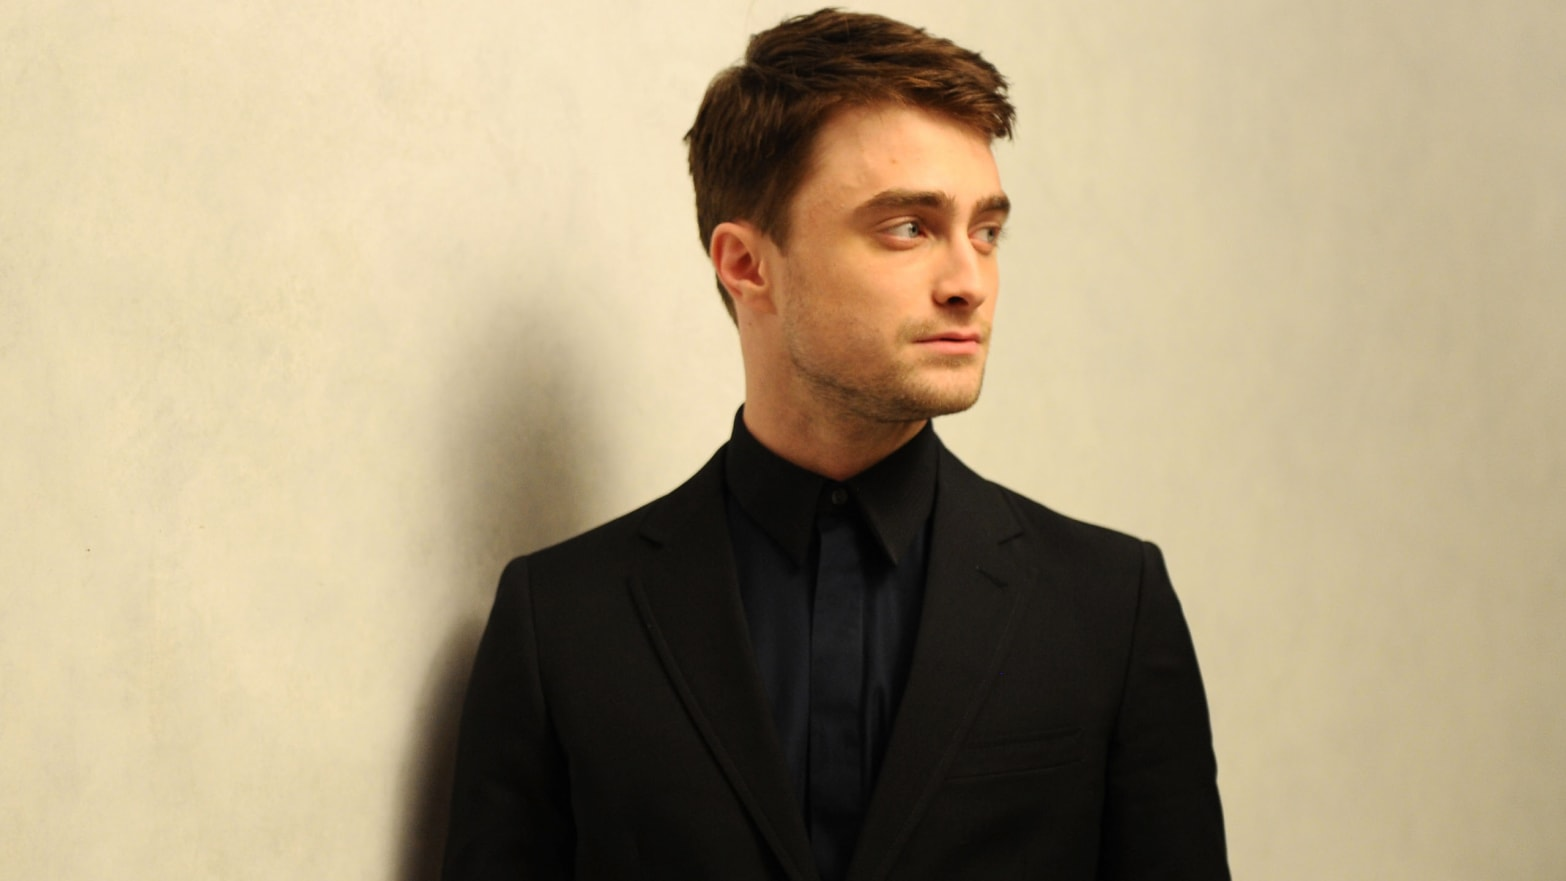 Rather valuable Daniel radcliffe sex with a girl nude remarkable